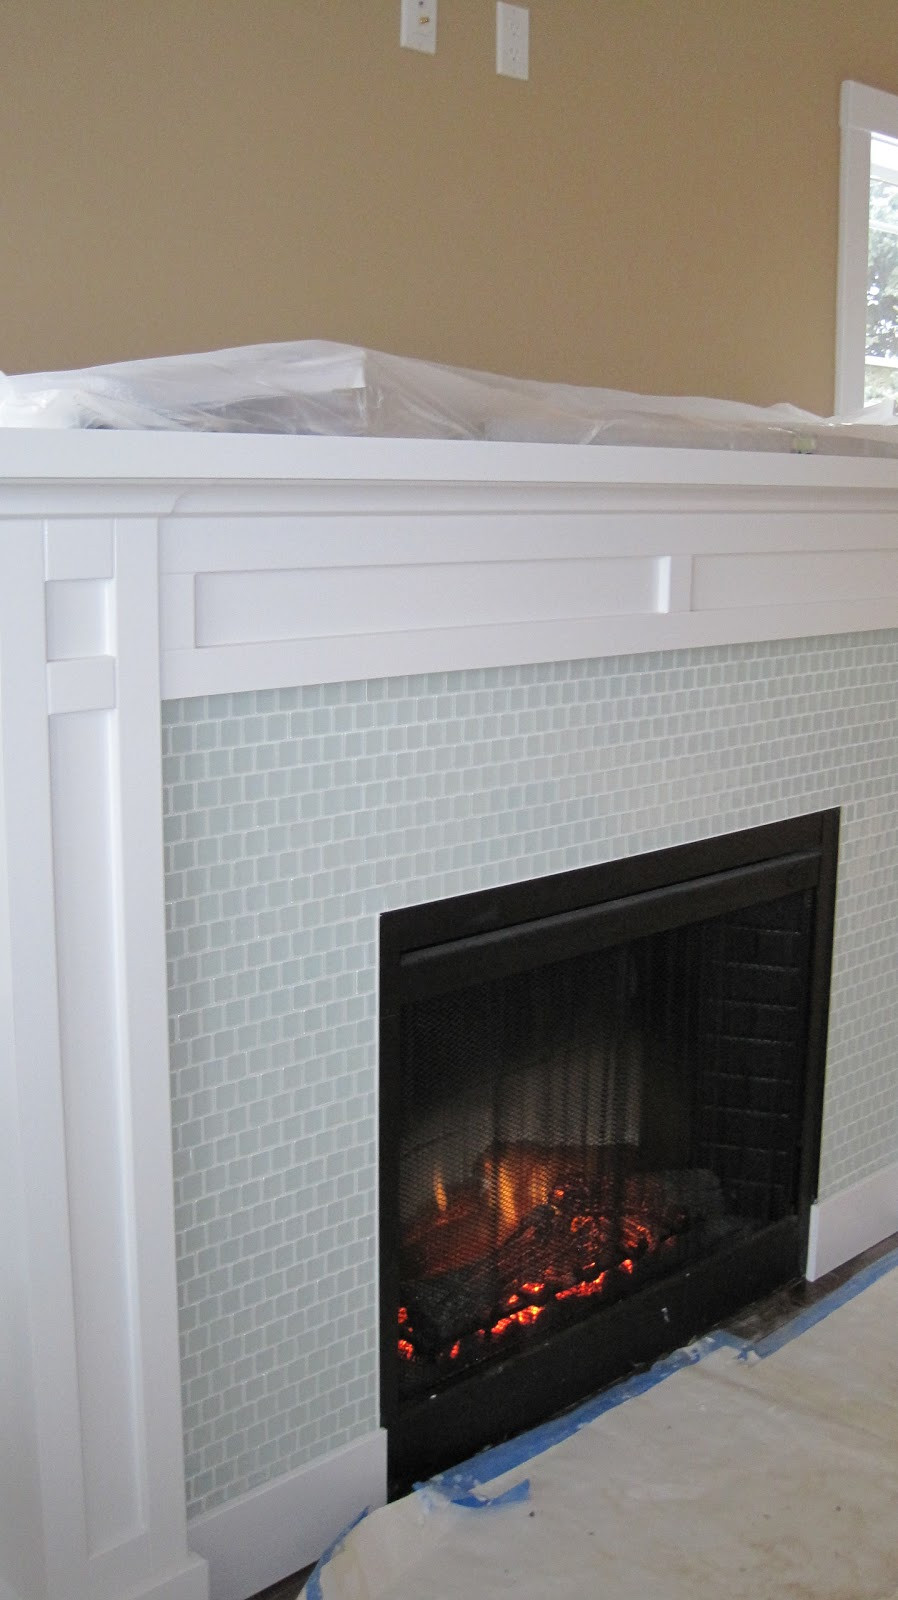 Best ideas about Tile For Fireplace . Save or Pin I Married a Tree Hugger Built in Fireplace with Shelves Now.